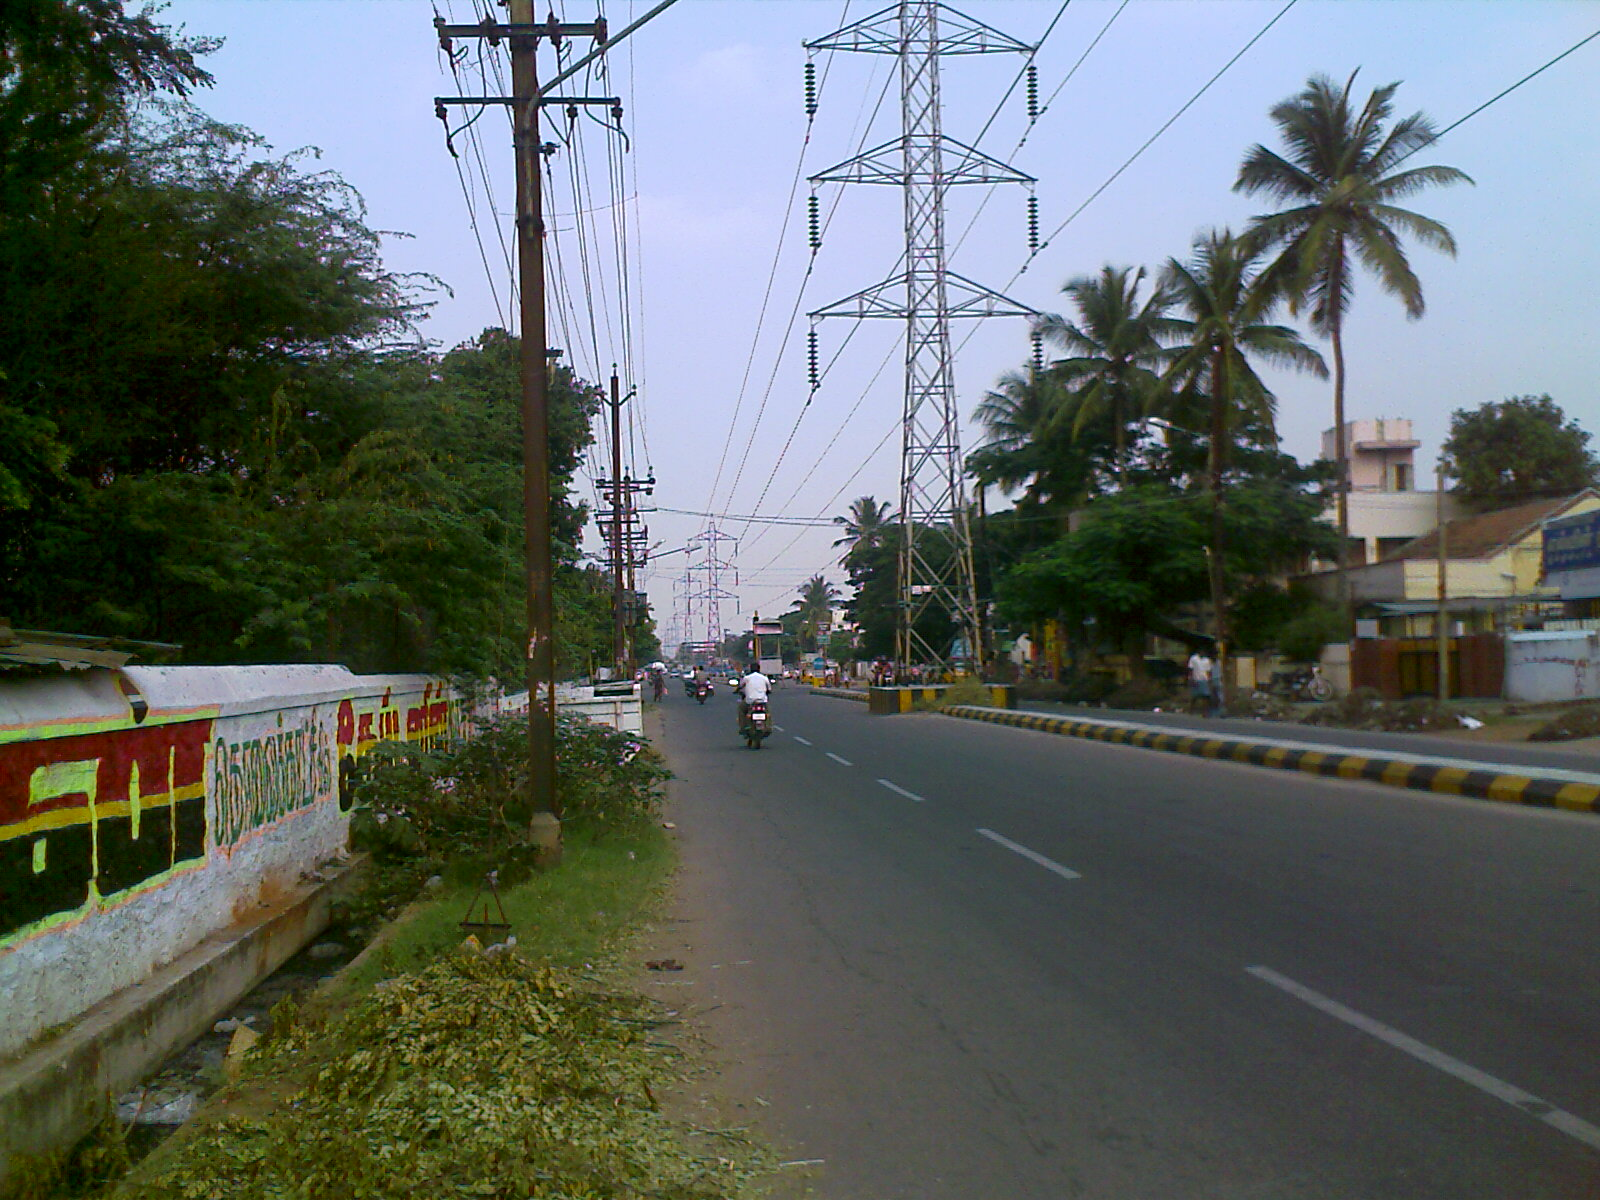 HT Cables going along the road in Cbe